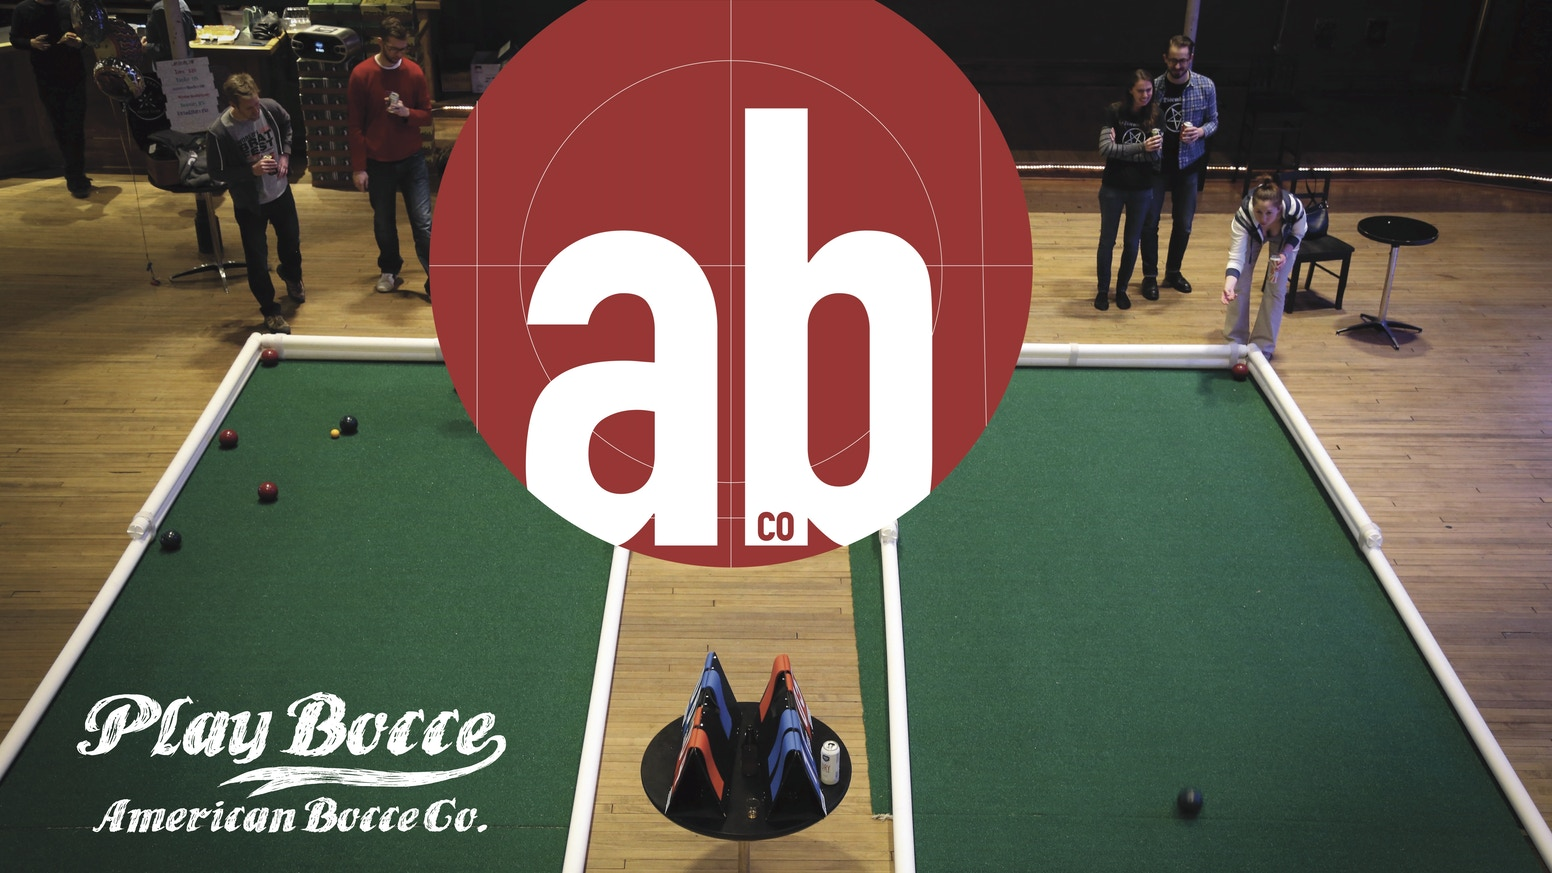 Through Extensive League Management Portable Technology And A Modern Roach We Are Reinventing The Timeless Sport Of Bocce Ball